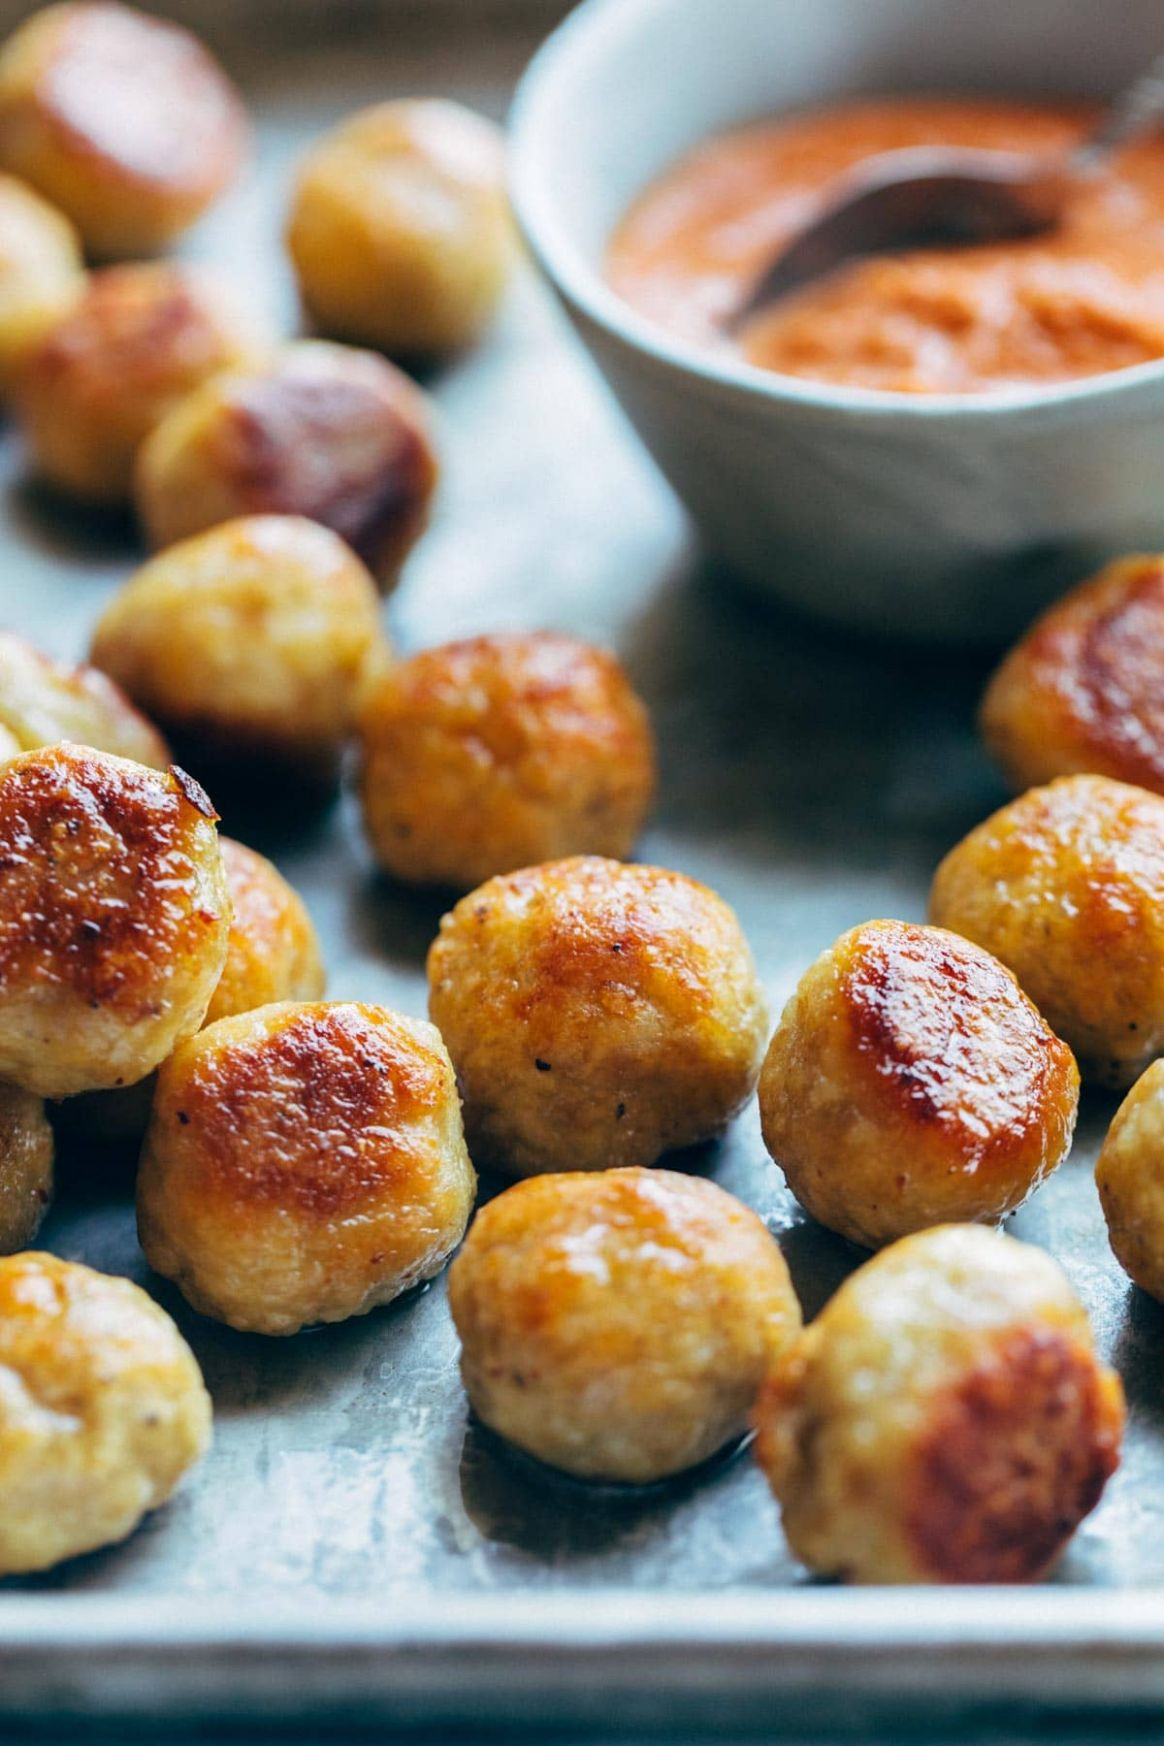 Best Anytime Baked Chicken Meatballs Recipe - Pinch of Yum - Easy Recipes Ground Chicken